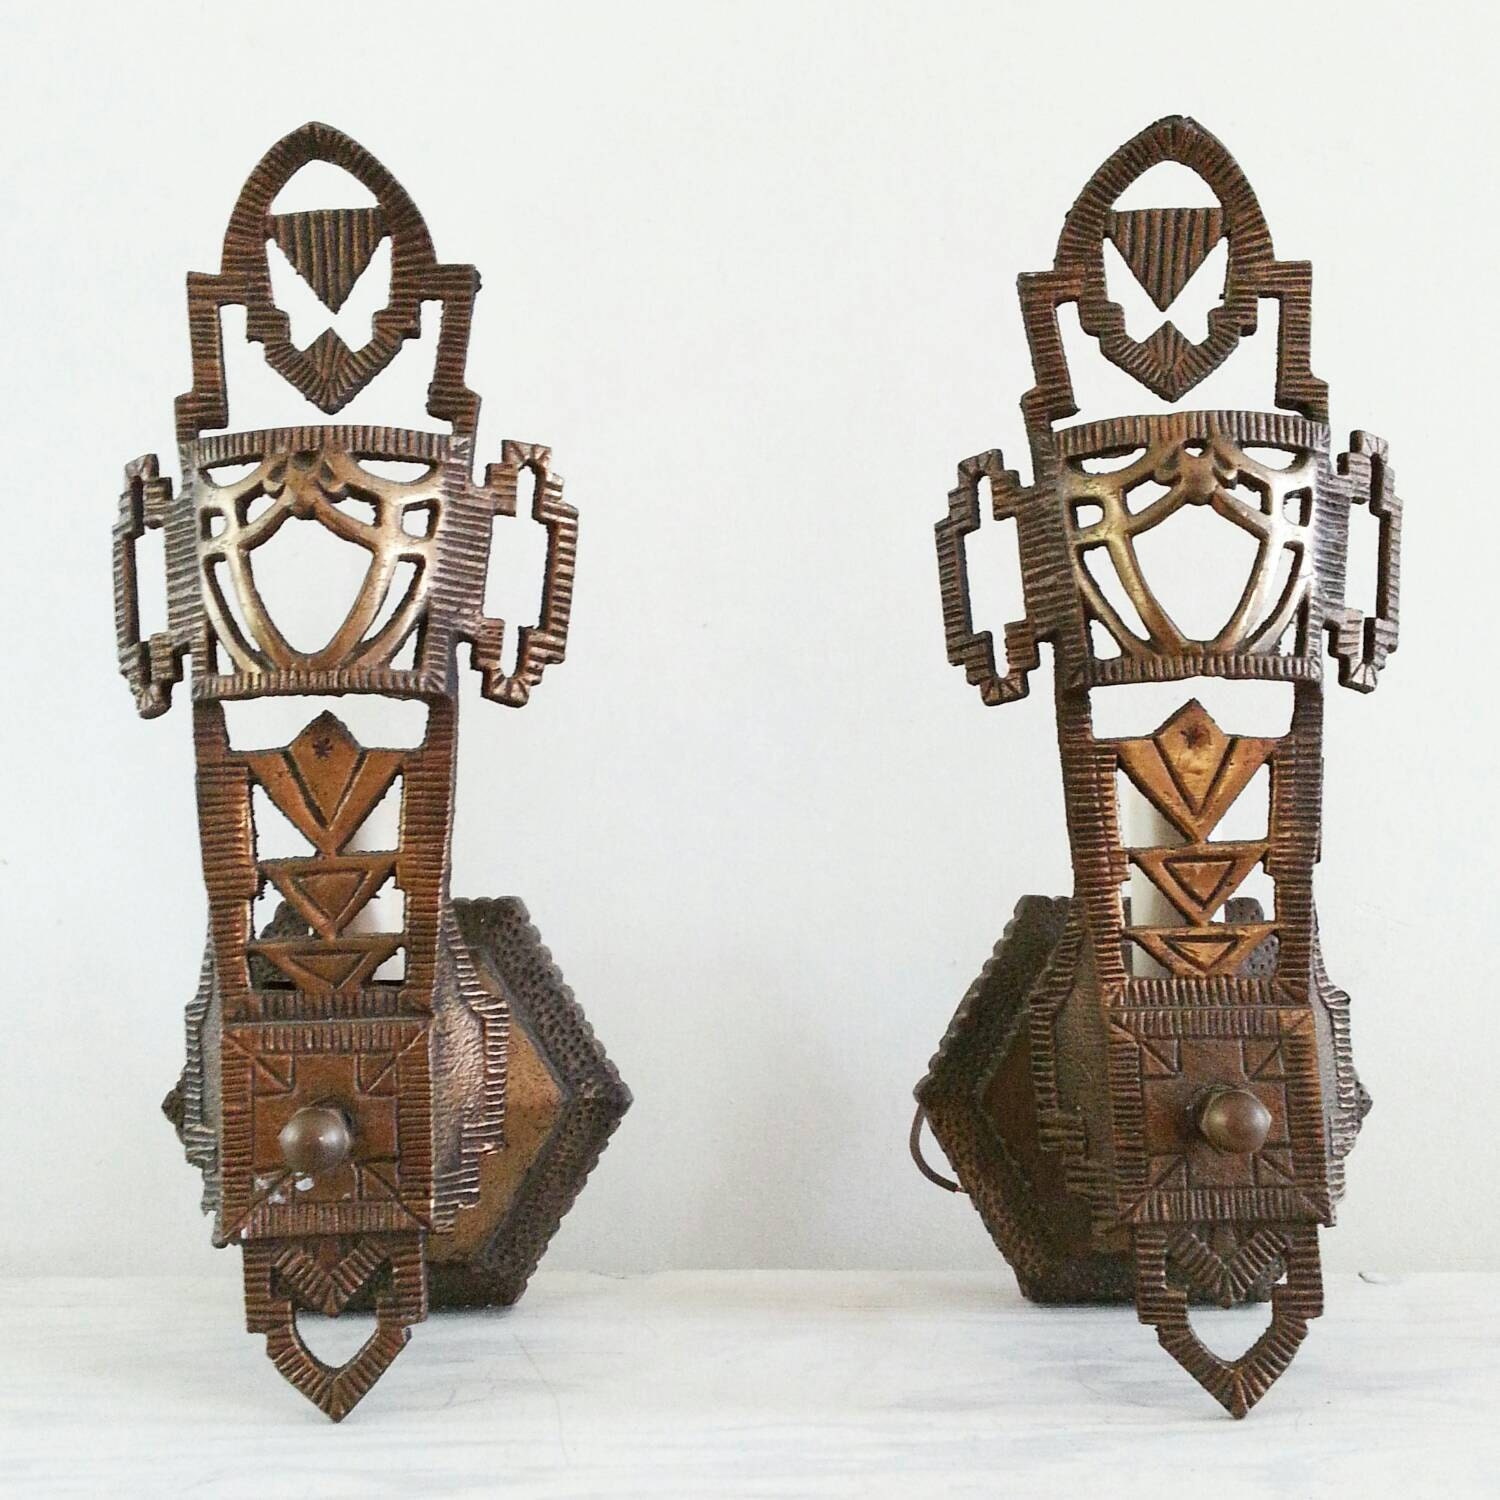 1930s Art Deco Spanish Revival Wall Sconces By Propsandpieces